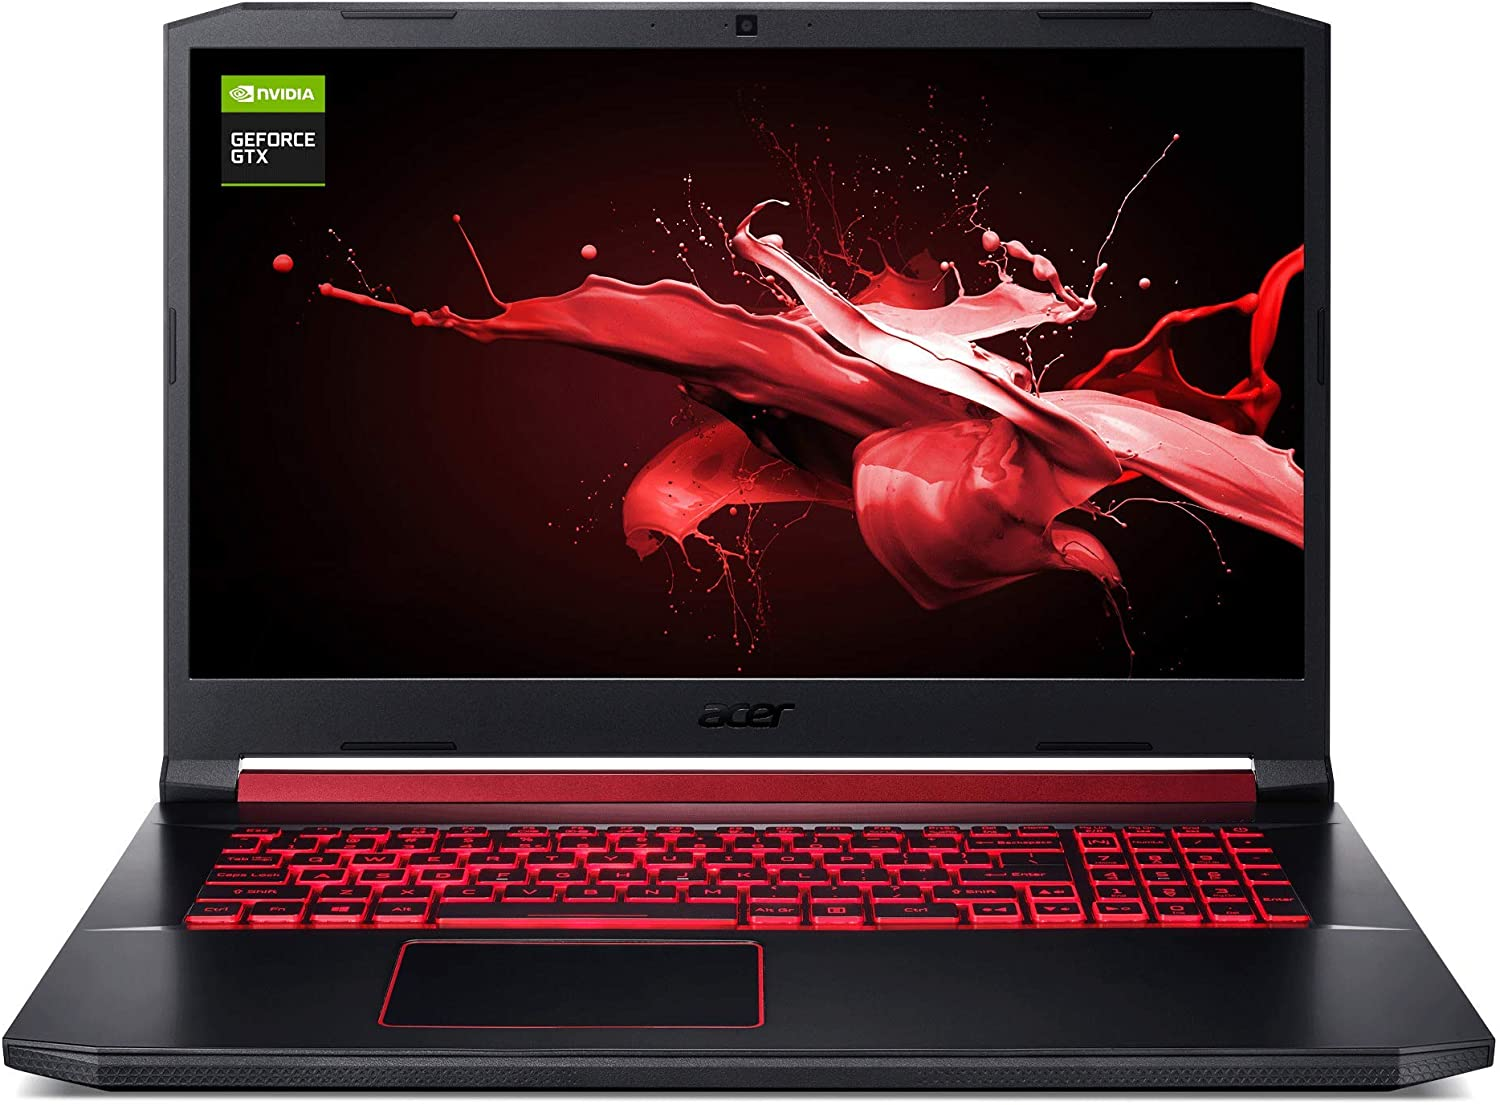 Amazon Com Acer Nitro 7 Gaming Laptop 15 6 Full Hd Ips Display 9th Gen Intel I7 9750h Geforce Gtx 1650 4gb 16gb Ddr4 512gb Pcie Nvme Ssd Backlit Keyboard An715 51 752b 16gb 512gb Computers